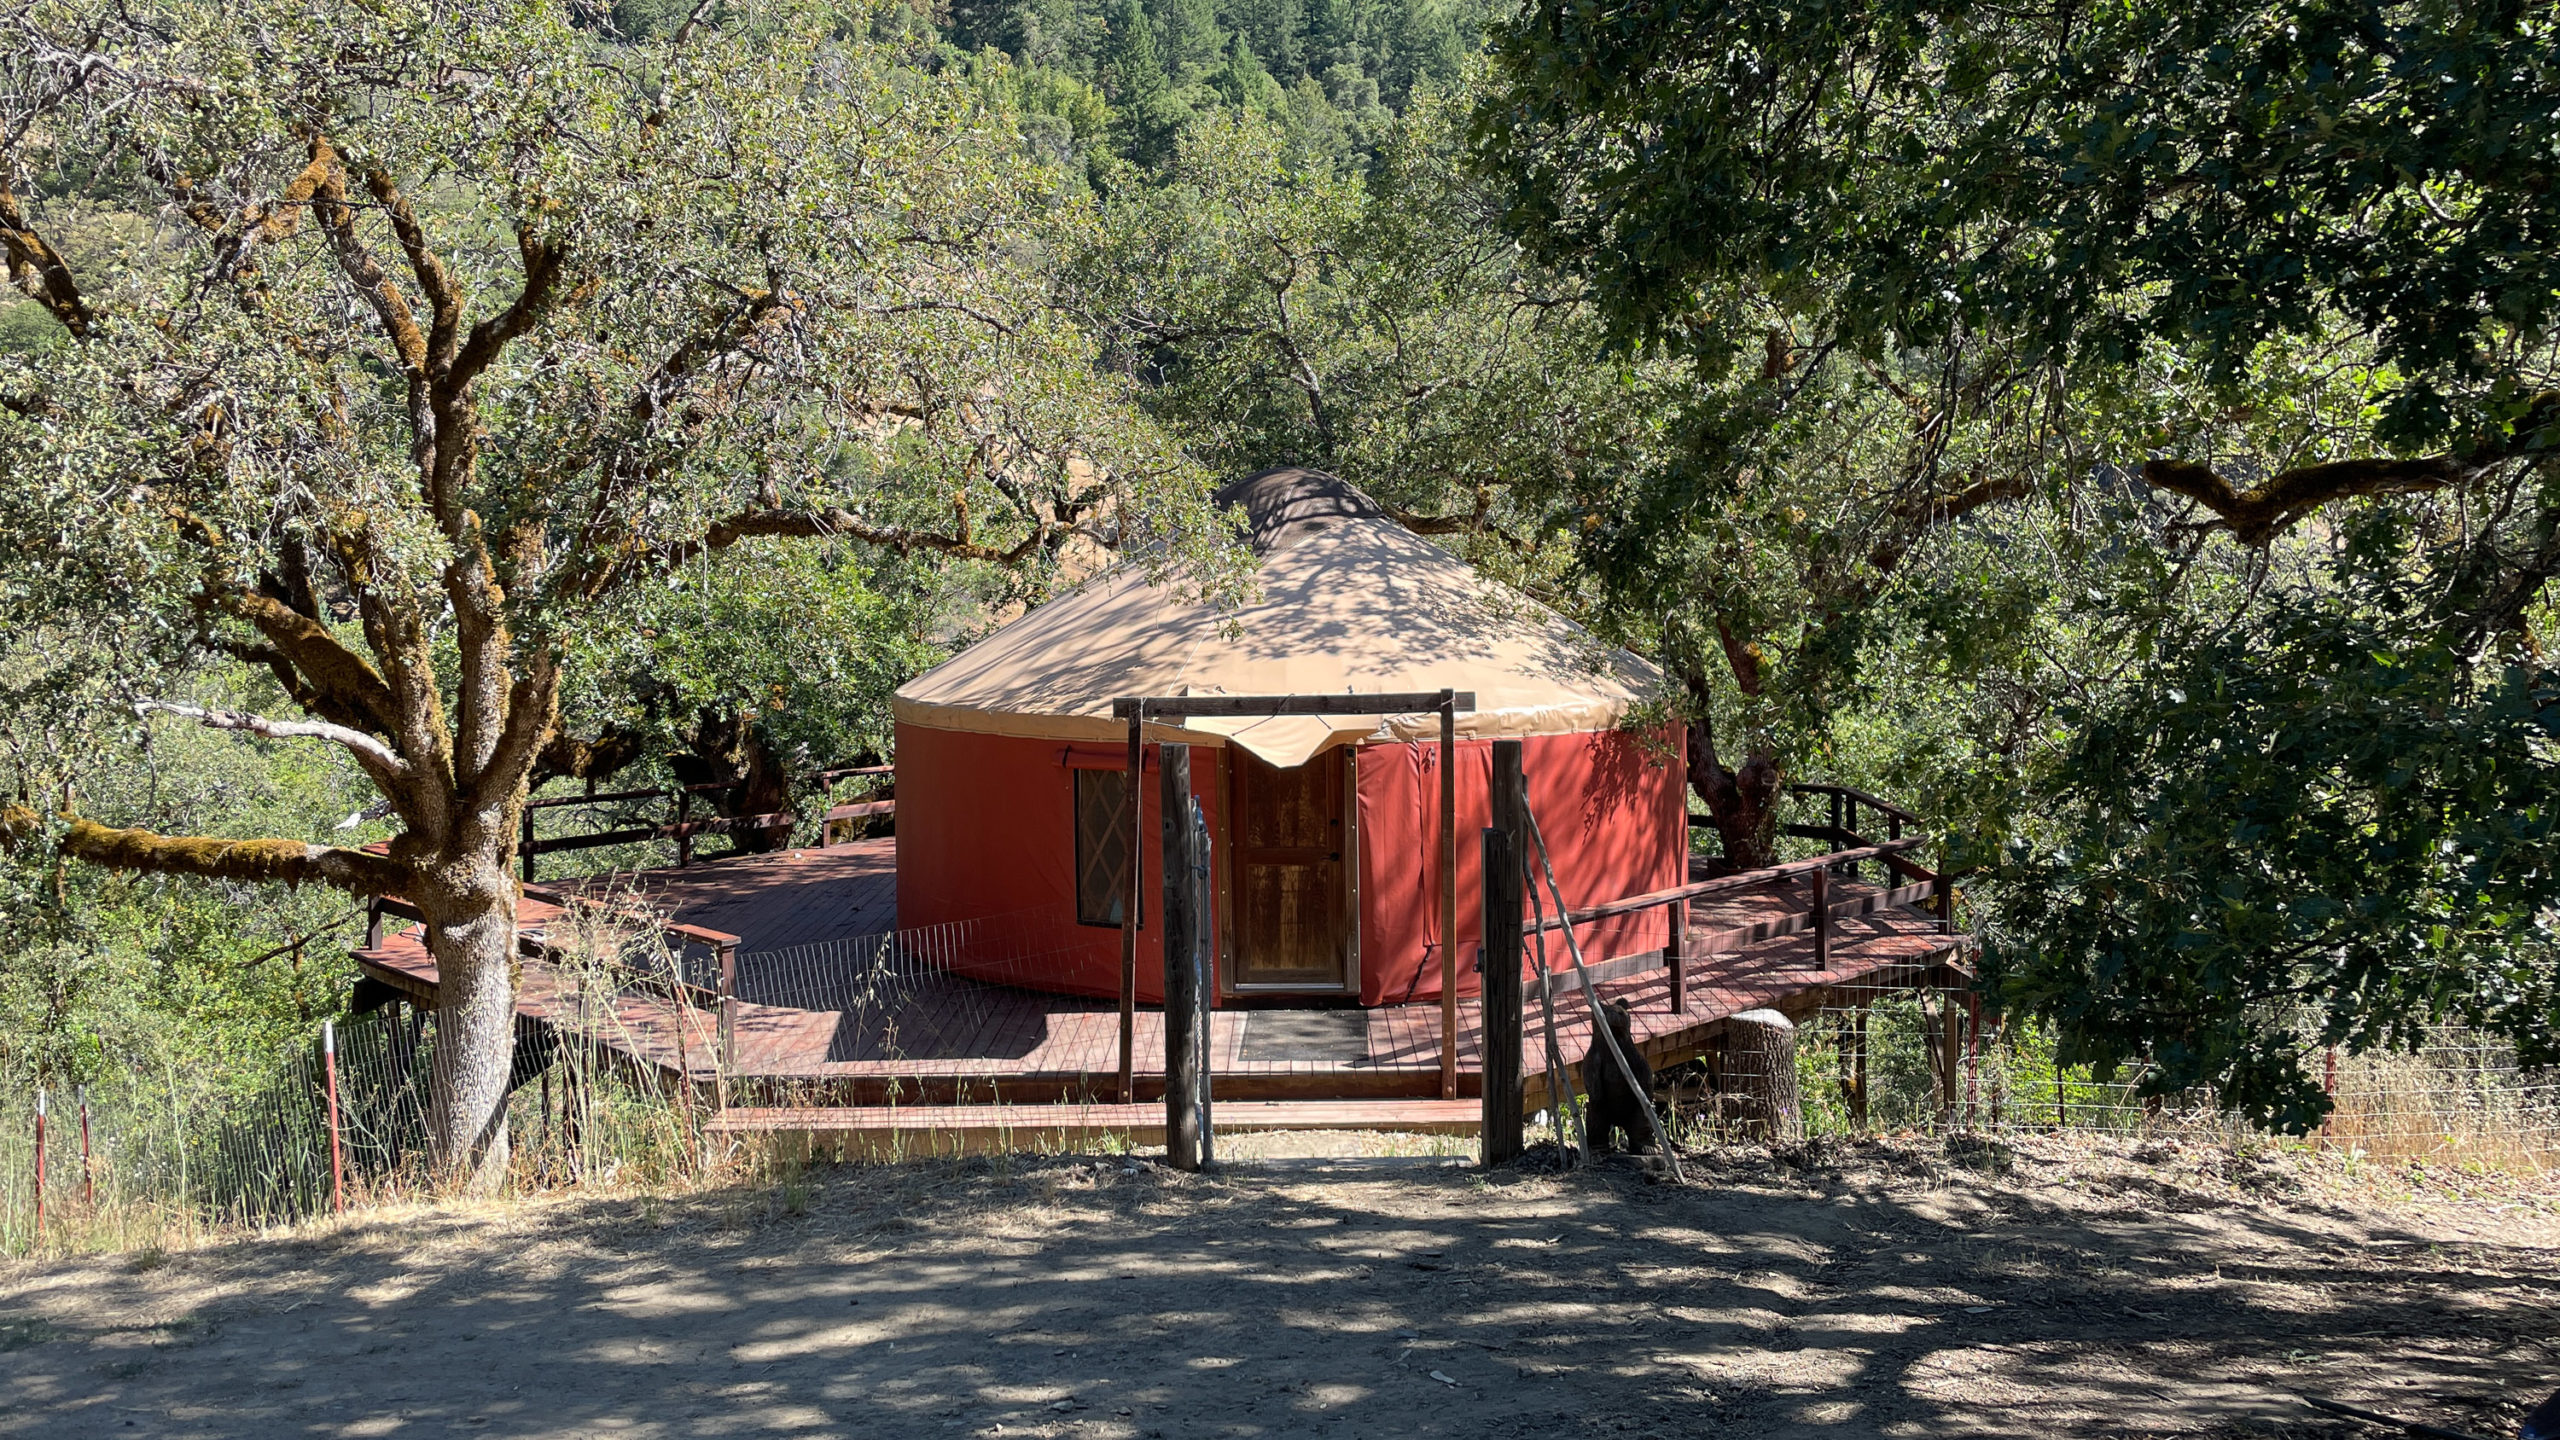 A yurt on a deck in a wooded landscape